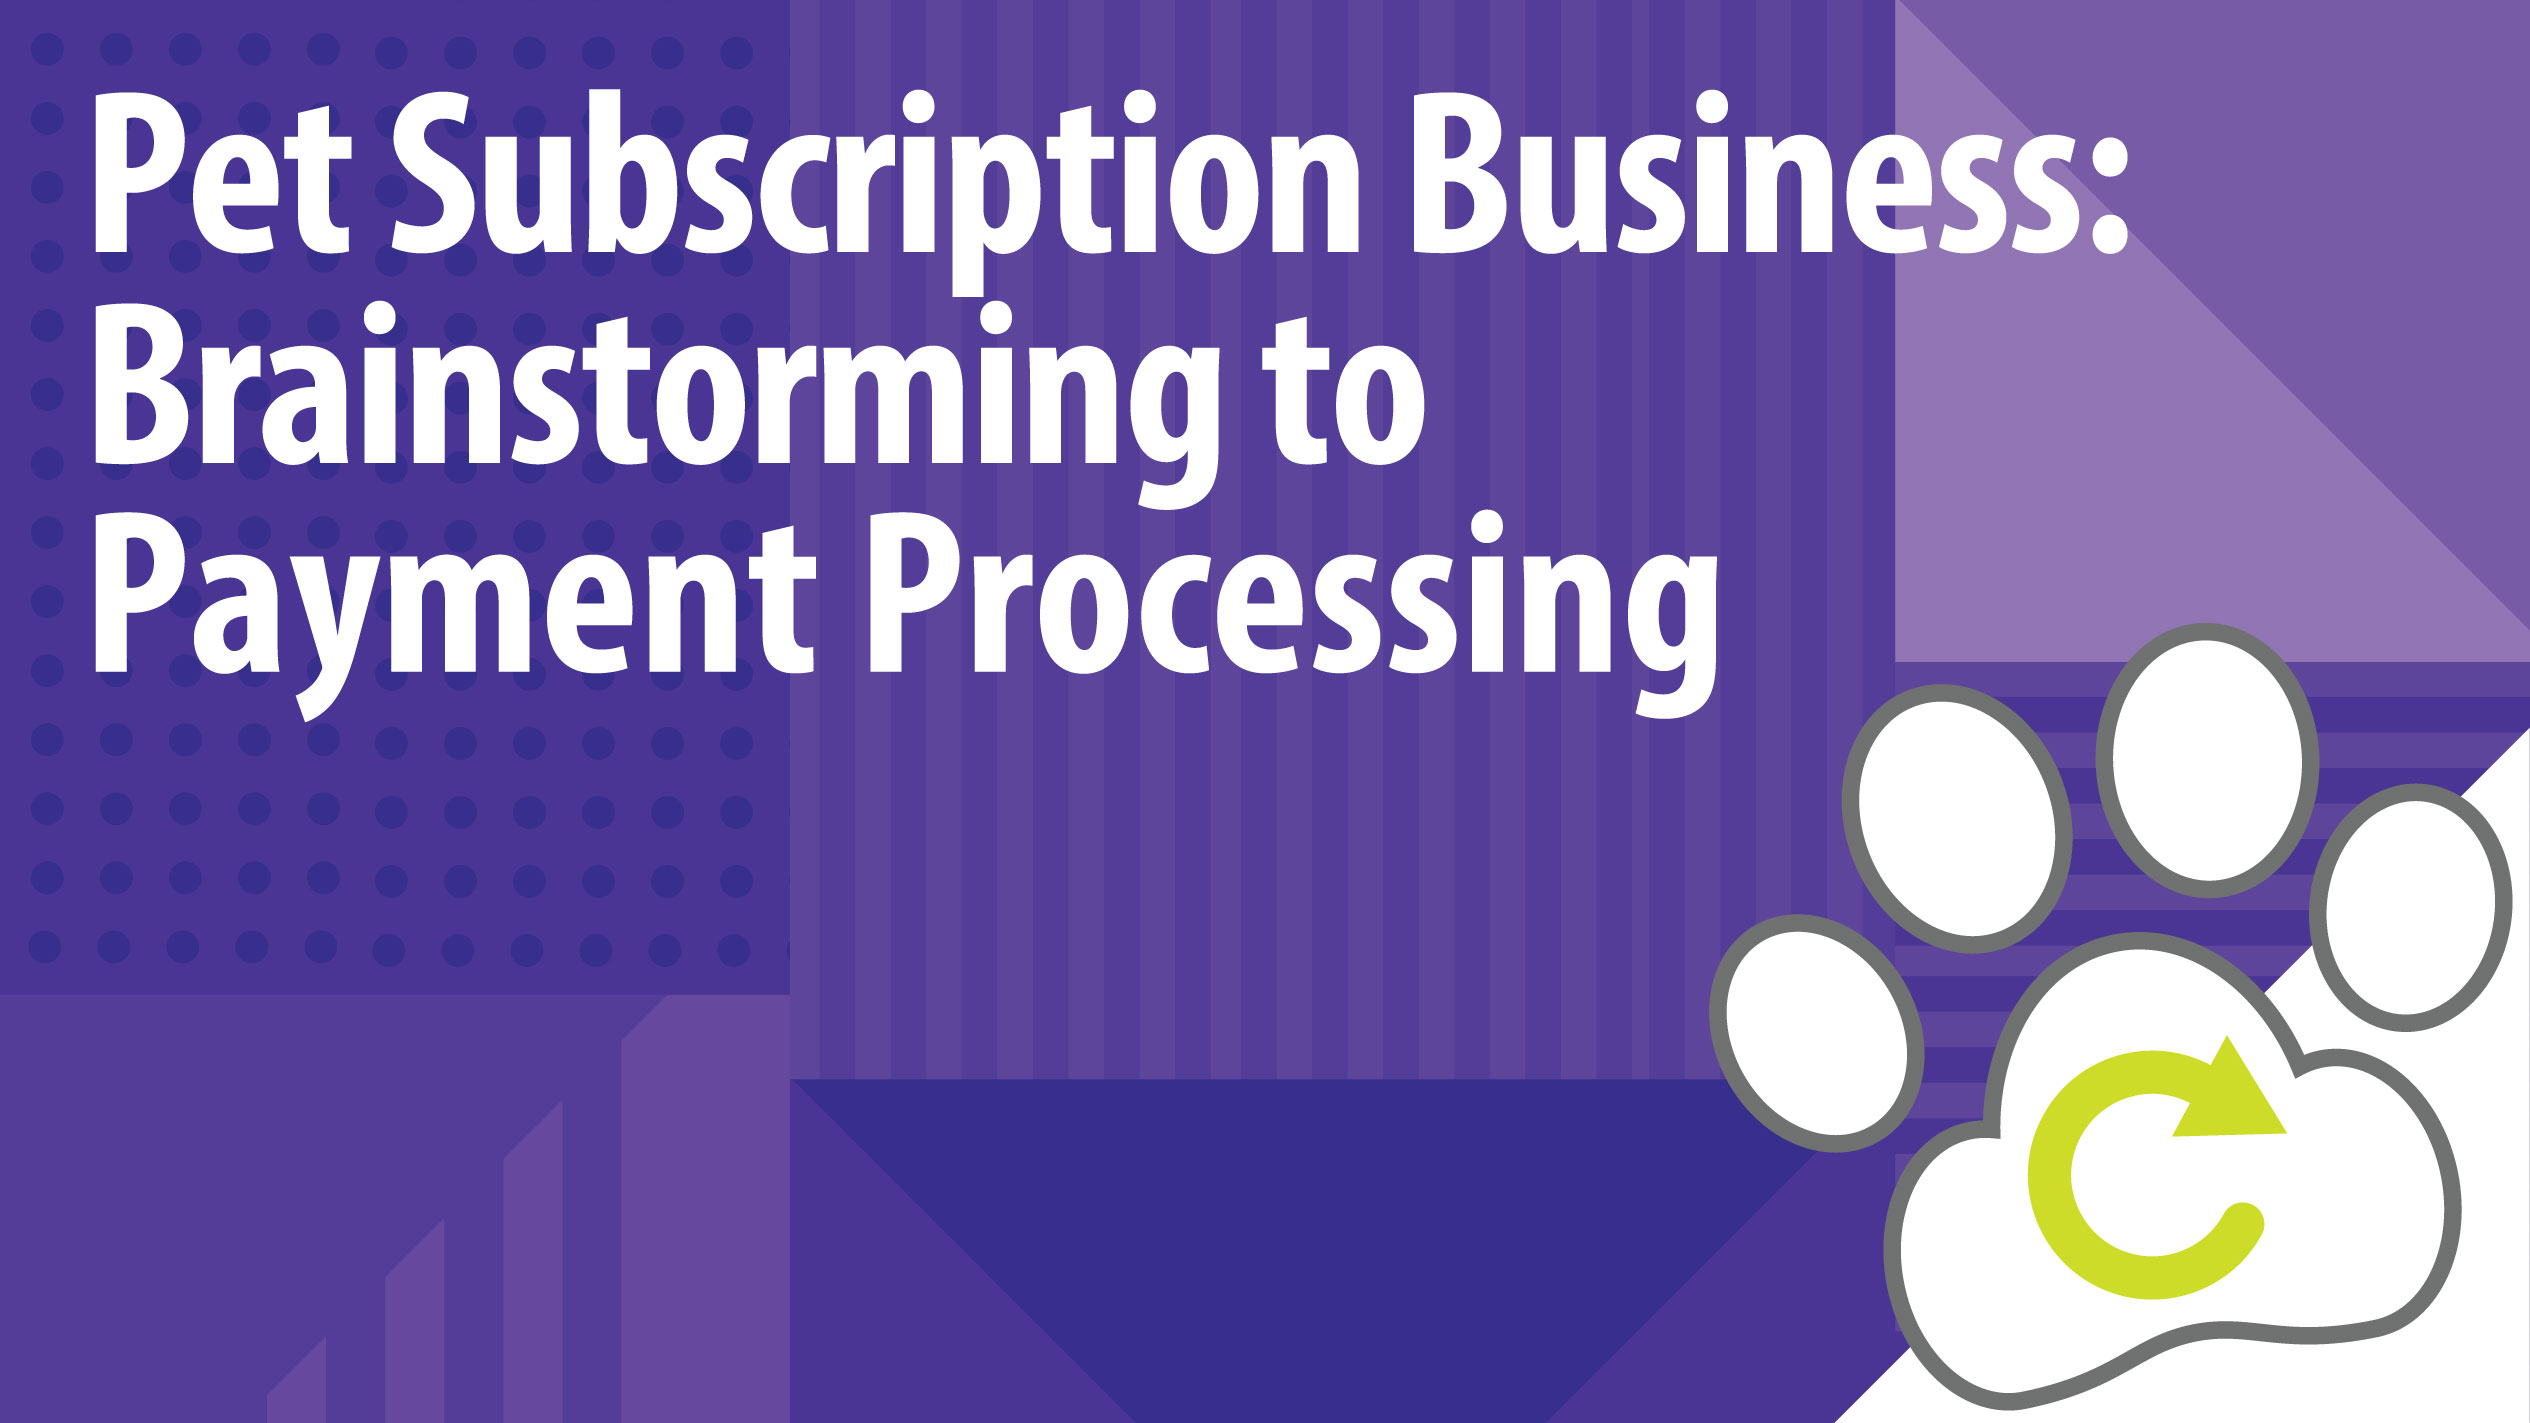 Pet Subscription Business: Brainstorming to Payment Processing